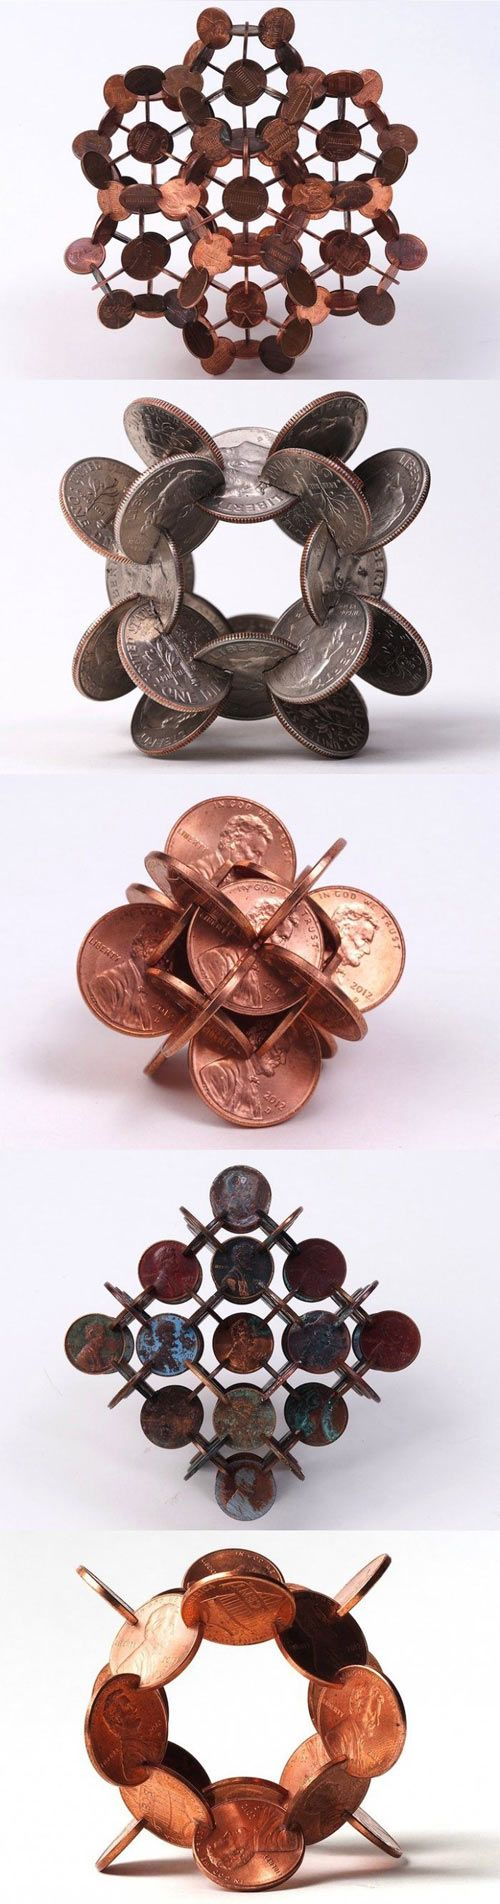 cool-coins-shaped-art-penny